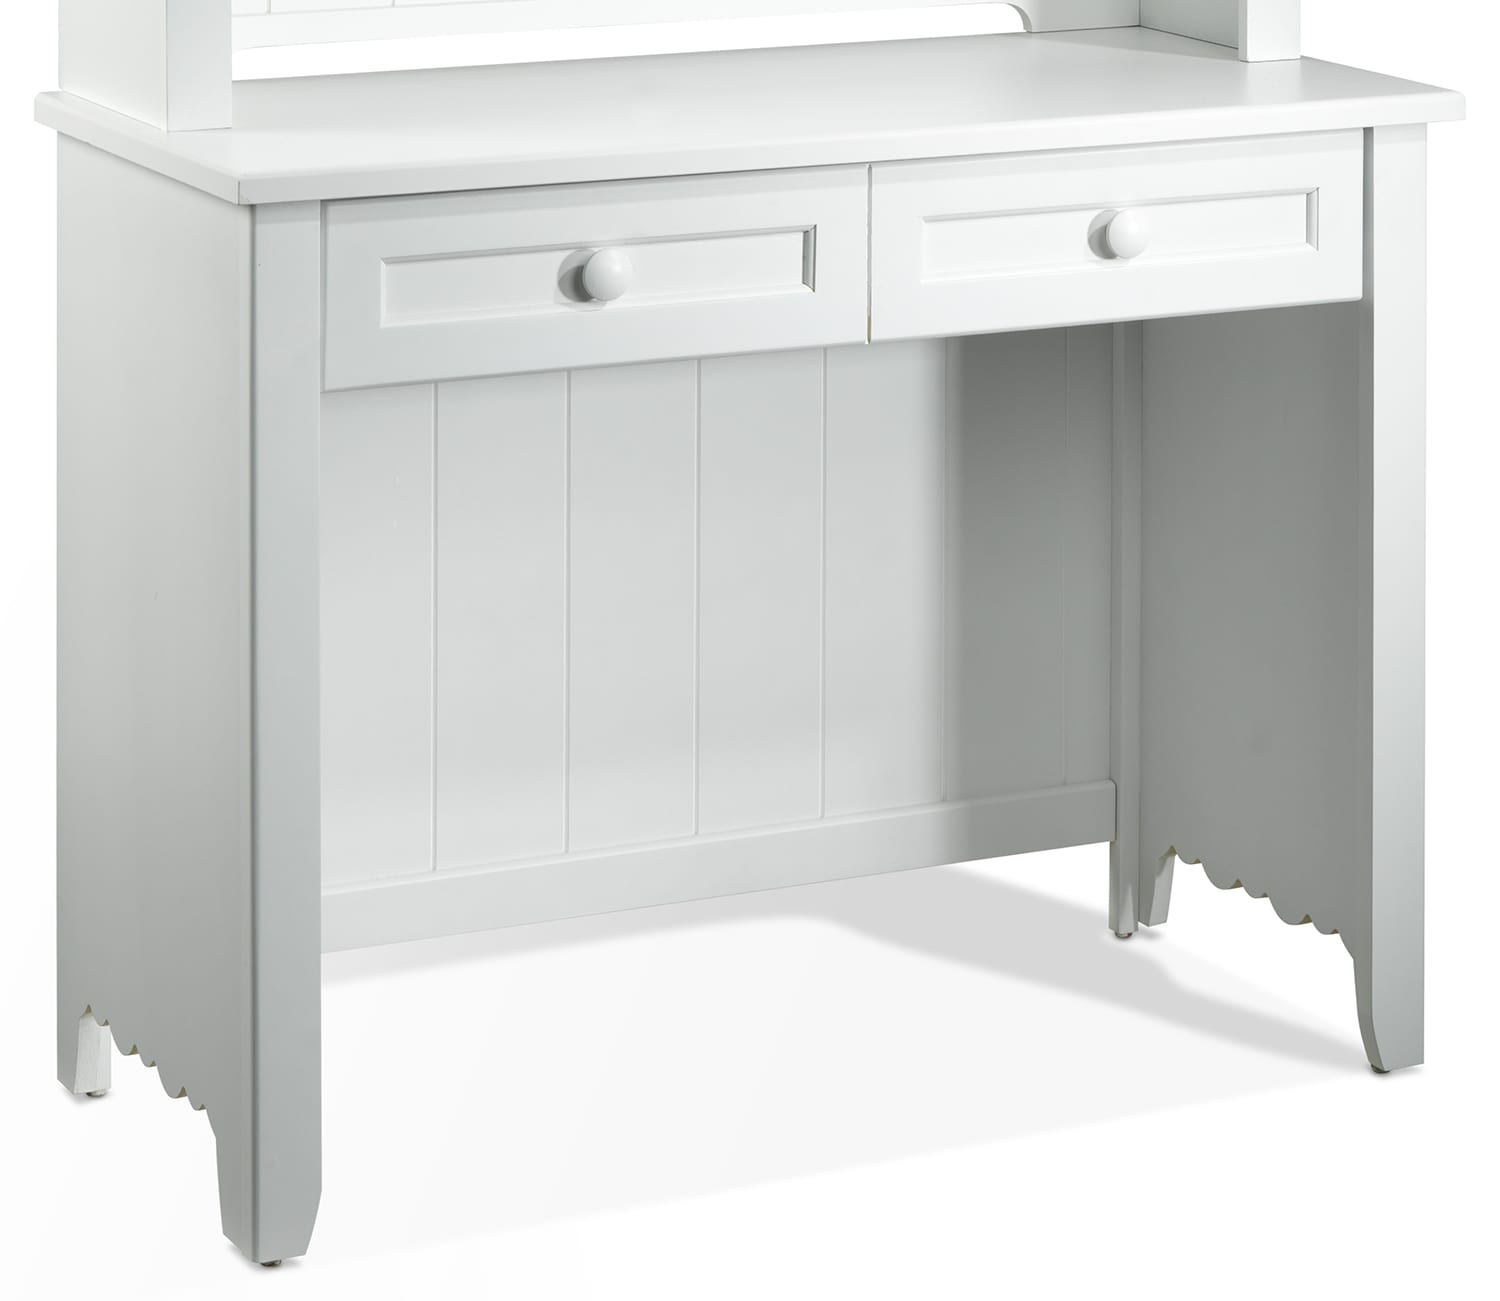 Sweetdreams Desk - White